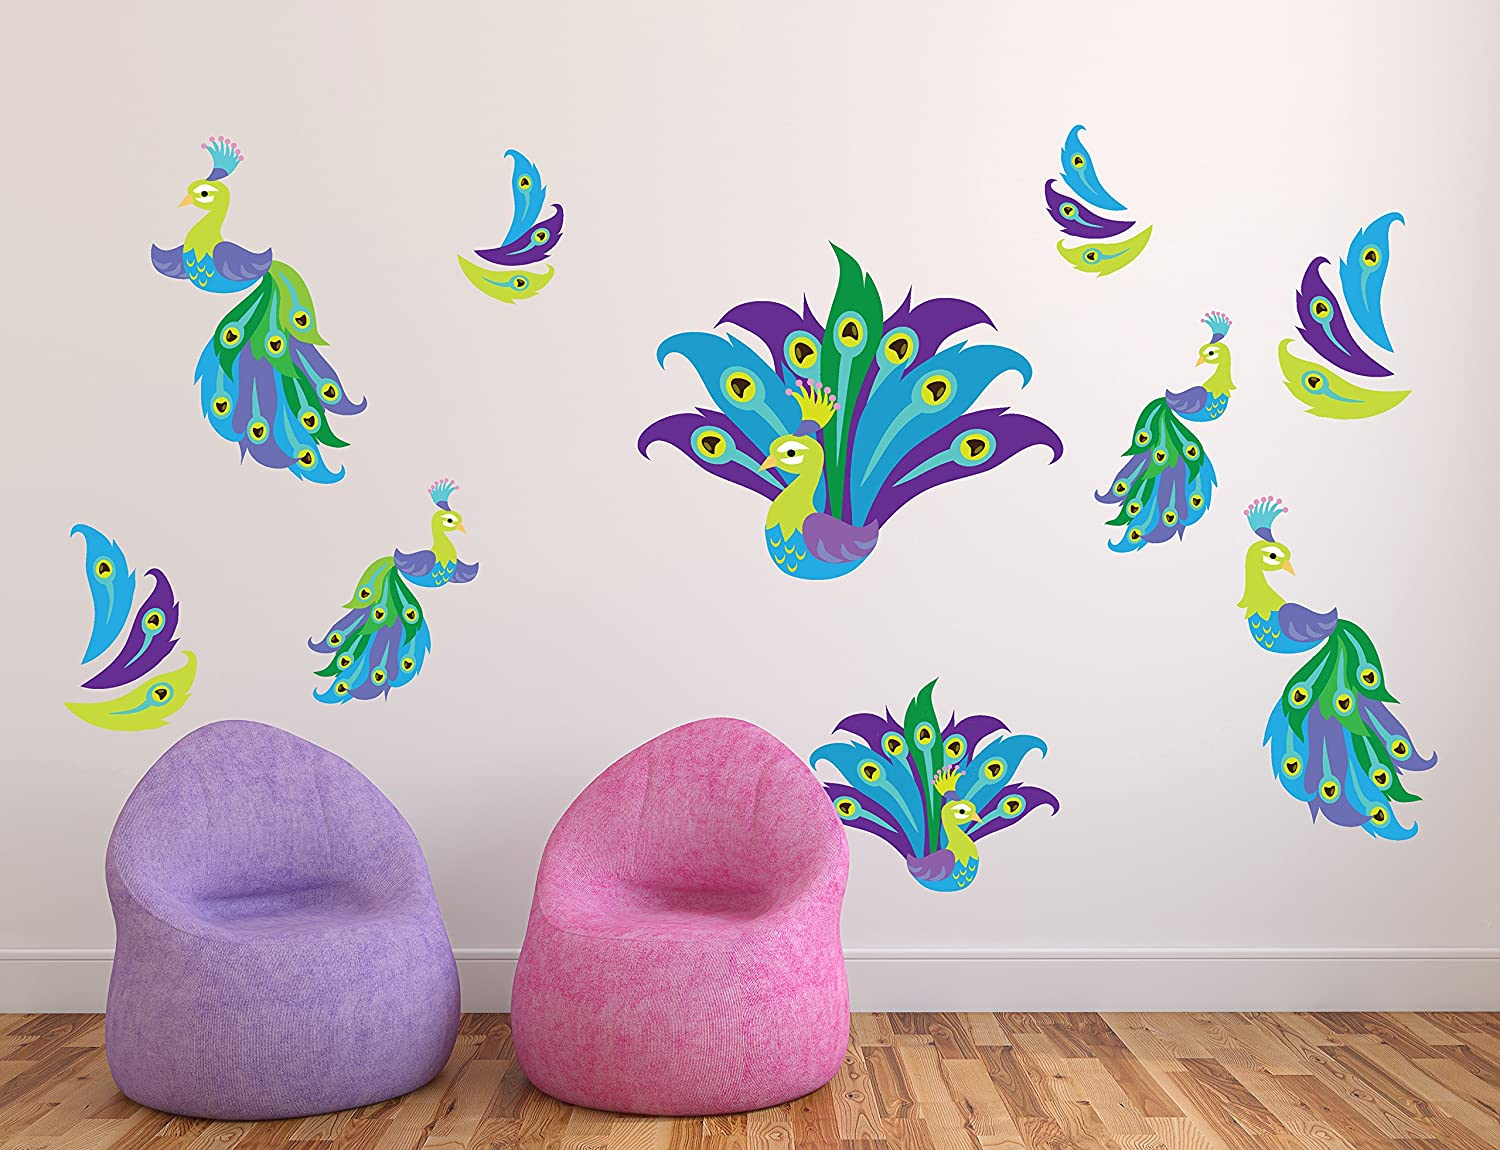 Amazon peacock wall stickers peacock feather wall dcor amazon peacock wall stickers peacock feather wall dcor peacock feather decorations peacock wall decals wdset10086 home kitchen amipublicfo Gallery